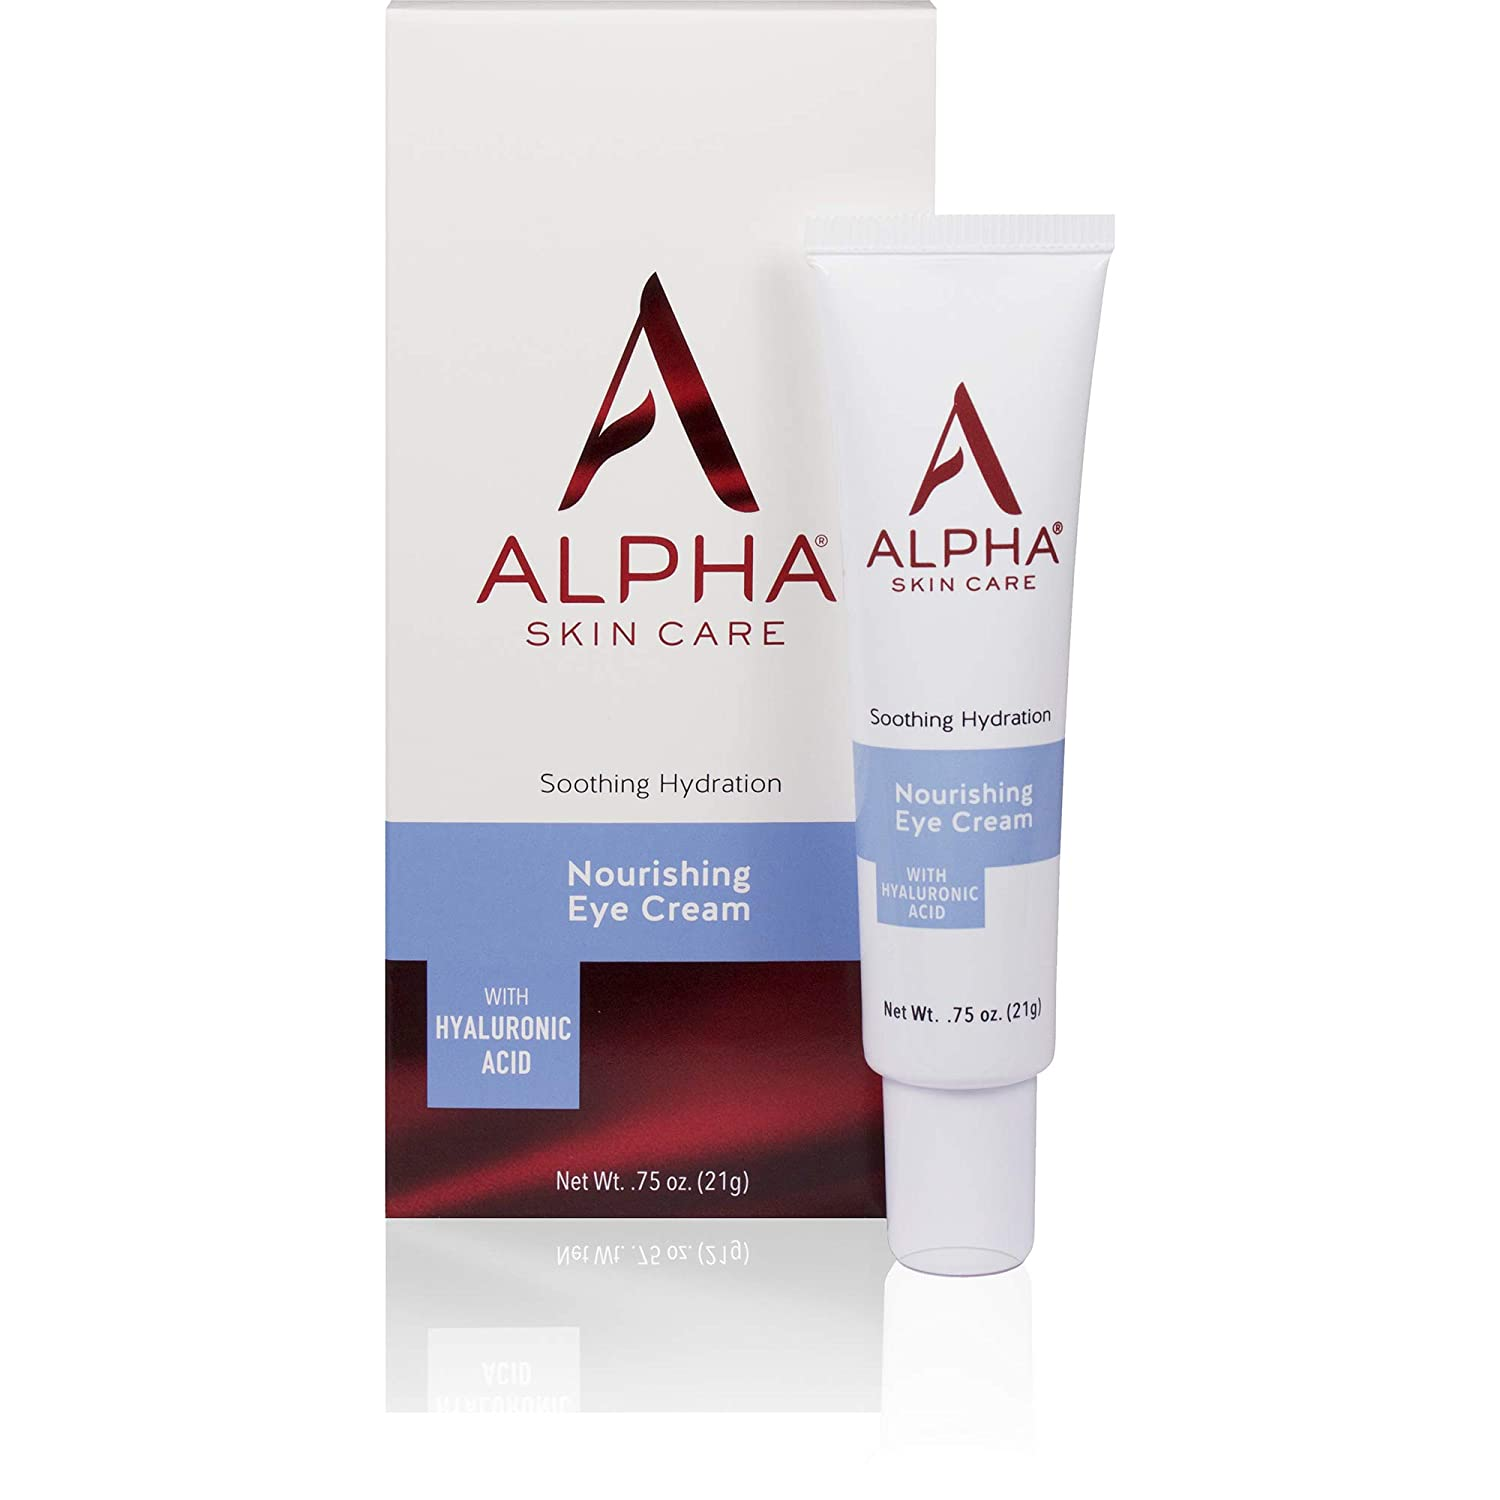 Alpha Skin Care Nourishing Eye Cream with Hyaluronic Acid | Anti-Aging Formula | Soothing Hydration | Reduces the Appearance of Lines & Wrinkles | For All Skin Types | 0.75 Oz